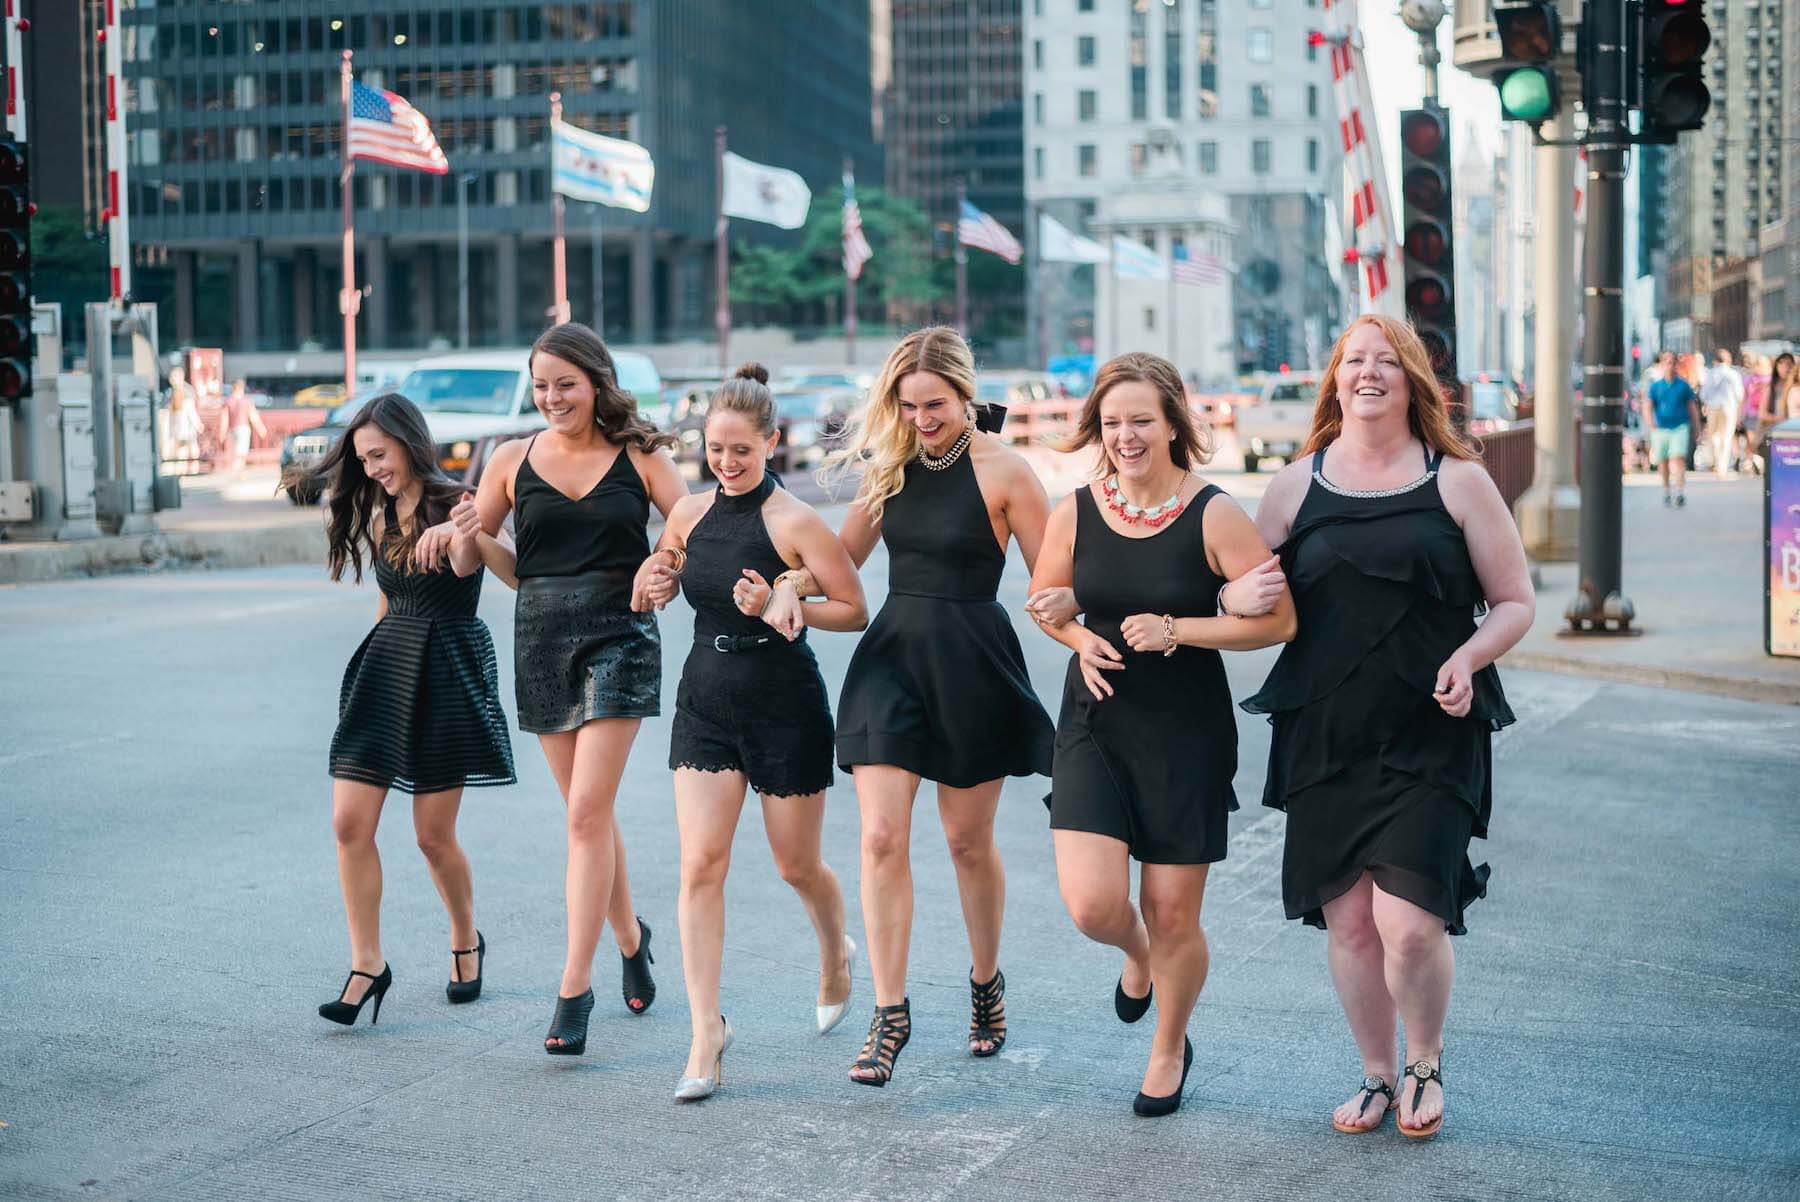 Six female friends crossing the street and holding hands on a bachelorette trip in Chicago, USA